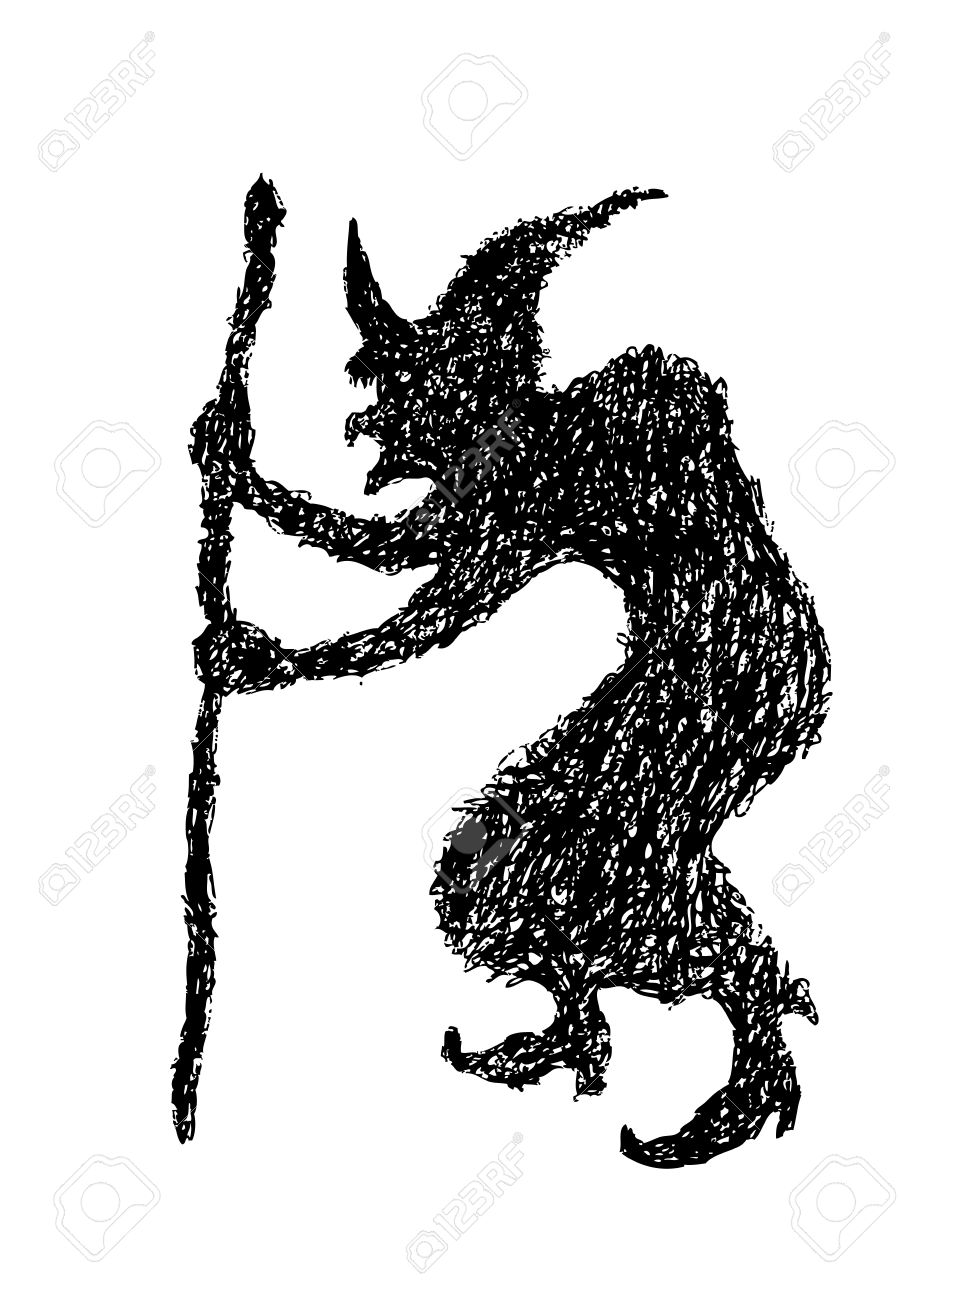 Hand Drawing Of Witch Silhouette Made By Pencil , Use For ...